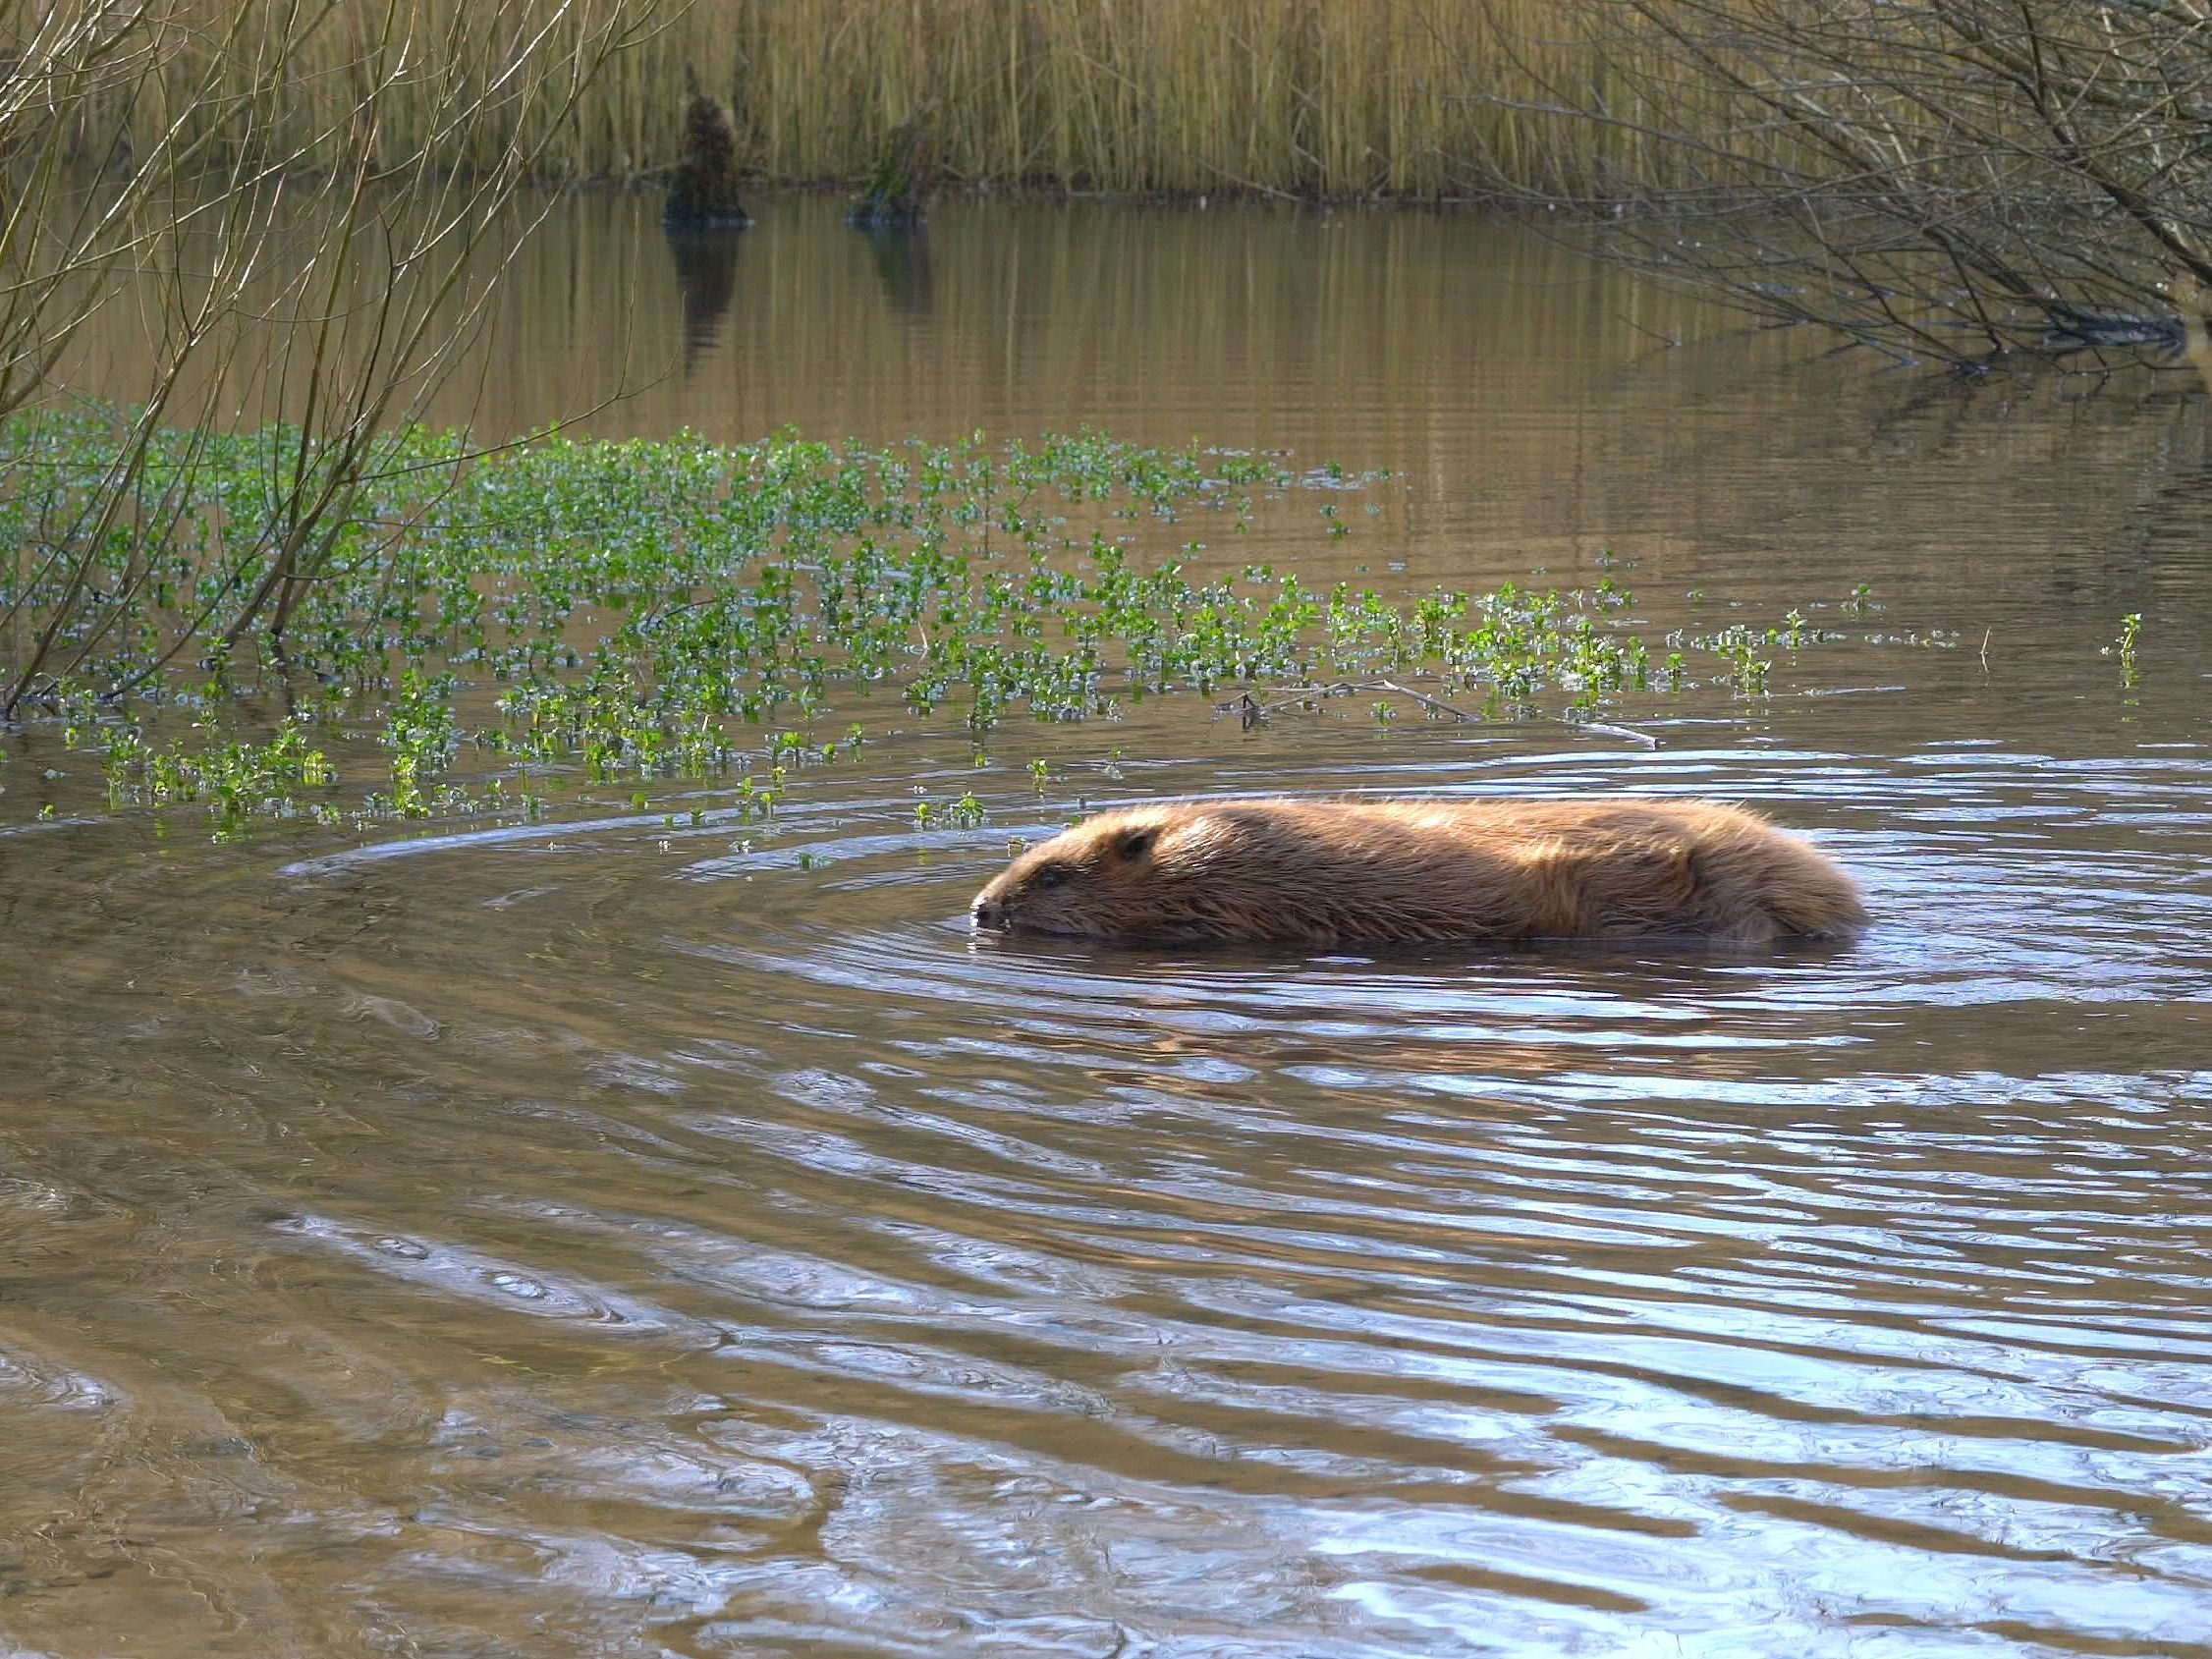 The beavers have been released at an undisclosed site. Picture: Dorset Wildlife Trust/James Burland